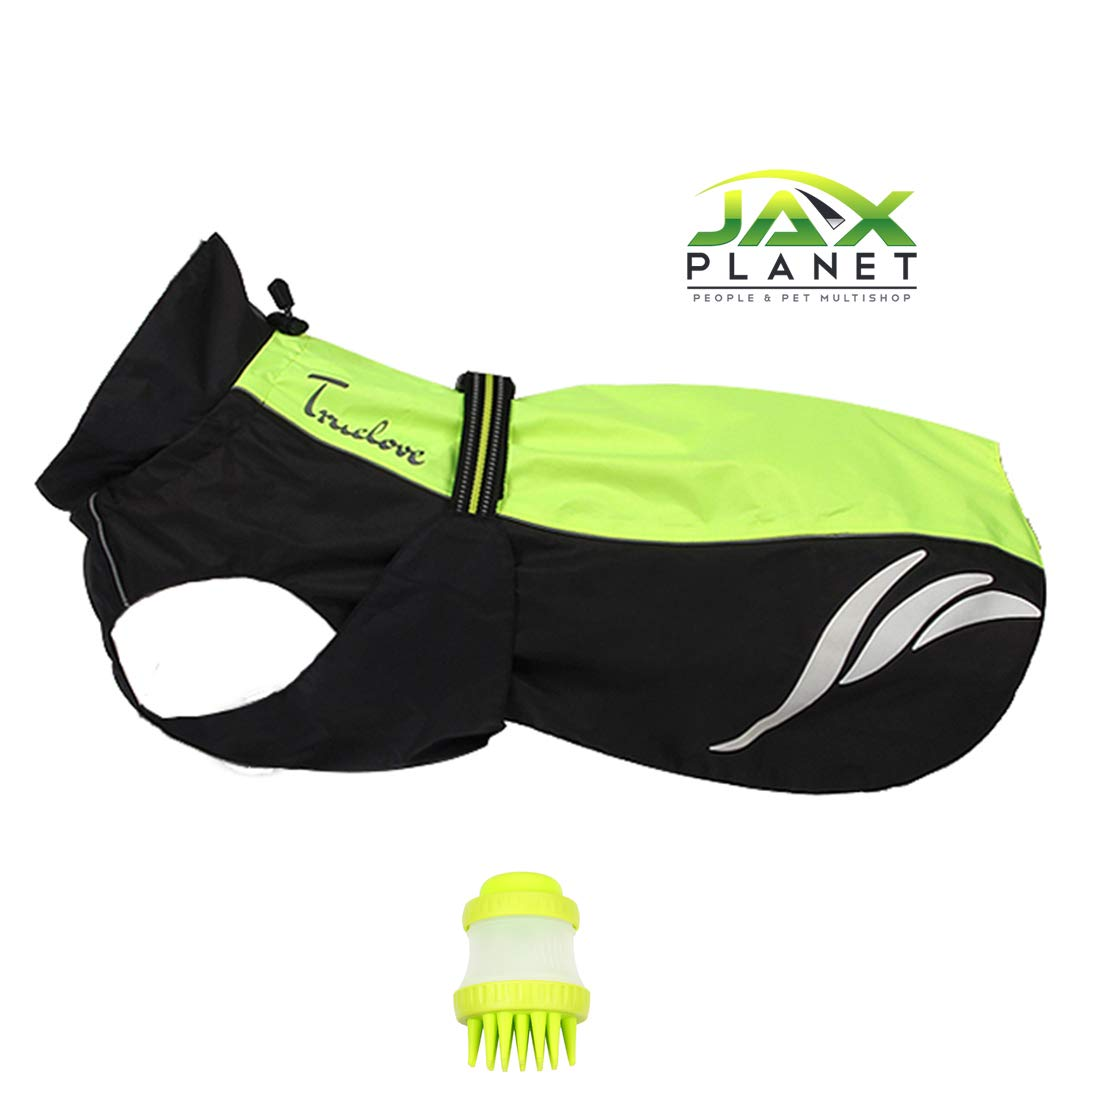 NeonYellow+Black Length 19.7inch 50cm NeonYellow+Black Length 19.7inch 50cm JAXplanet Dog Coat Windproof Waterproof Set[TLCAG2] Stylish Sturdy Safe 3M Reflective Easy On&Off Comfortable Outer Dog Jackets for Small Medium Large Dogs, (Length 19.7inch 50cm,